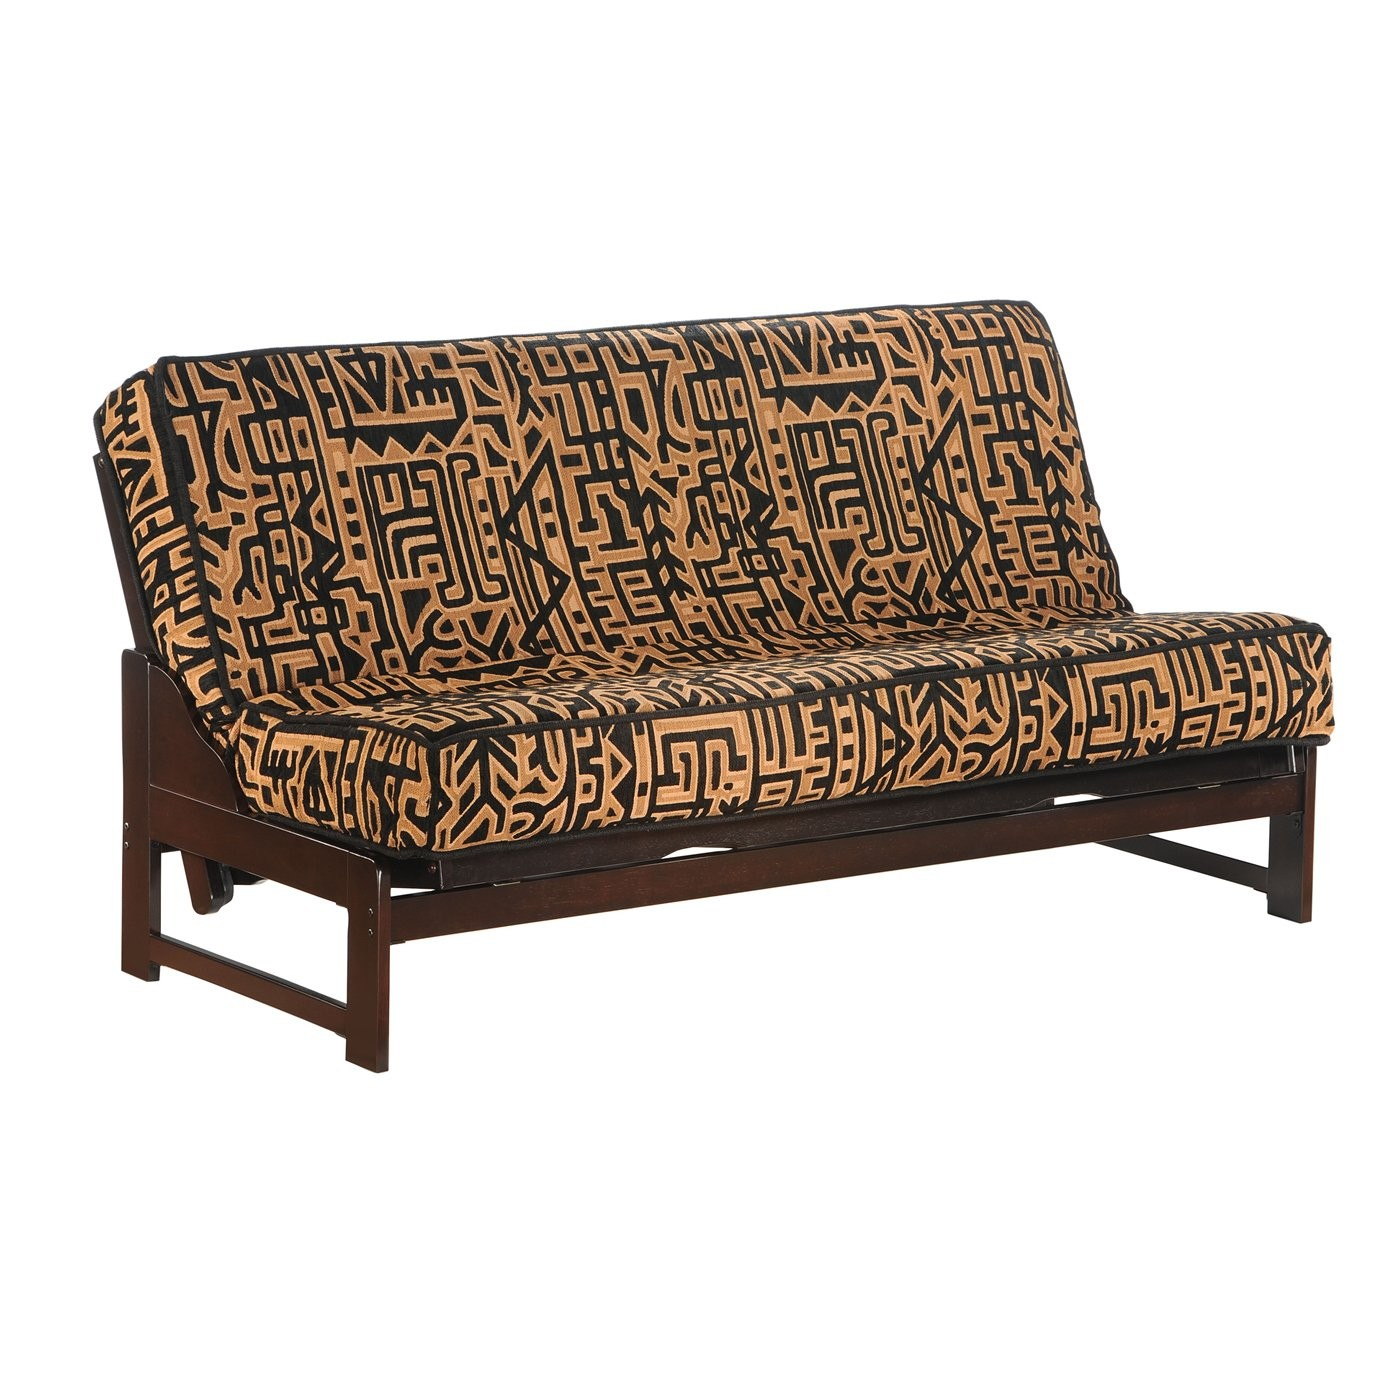 Fullsize Of Queen Futon Frame